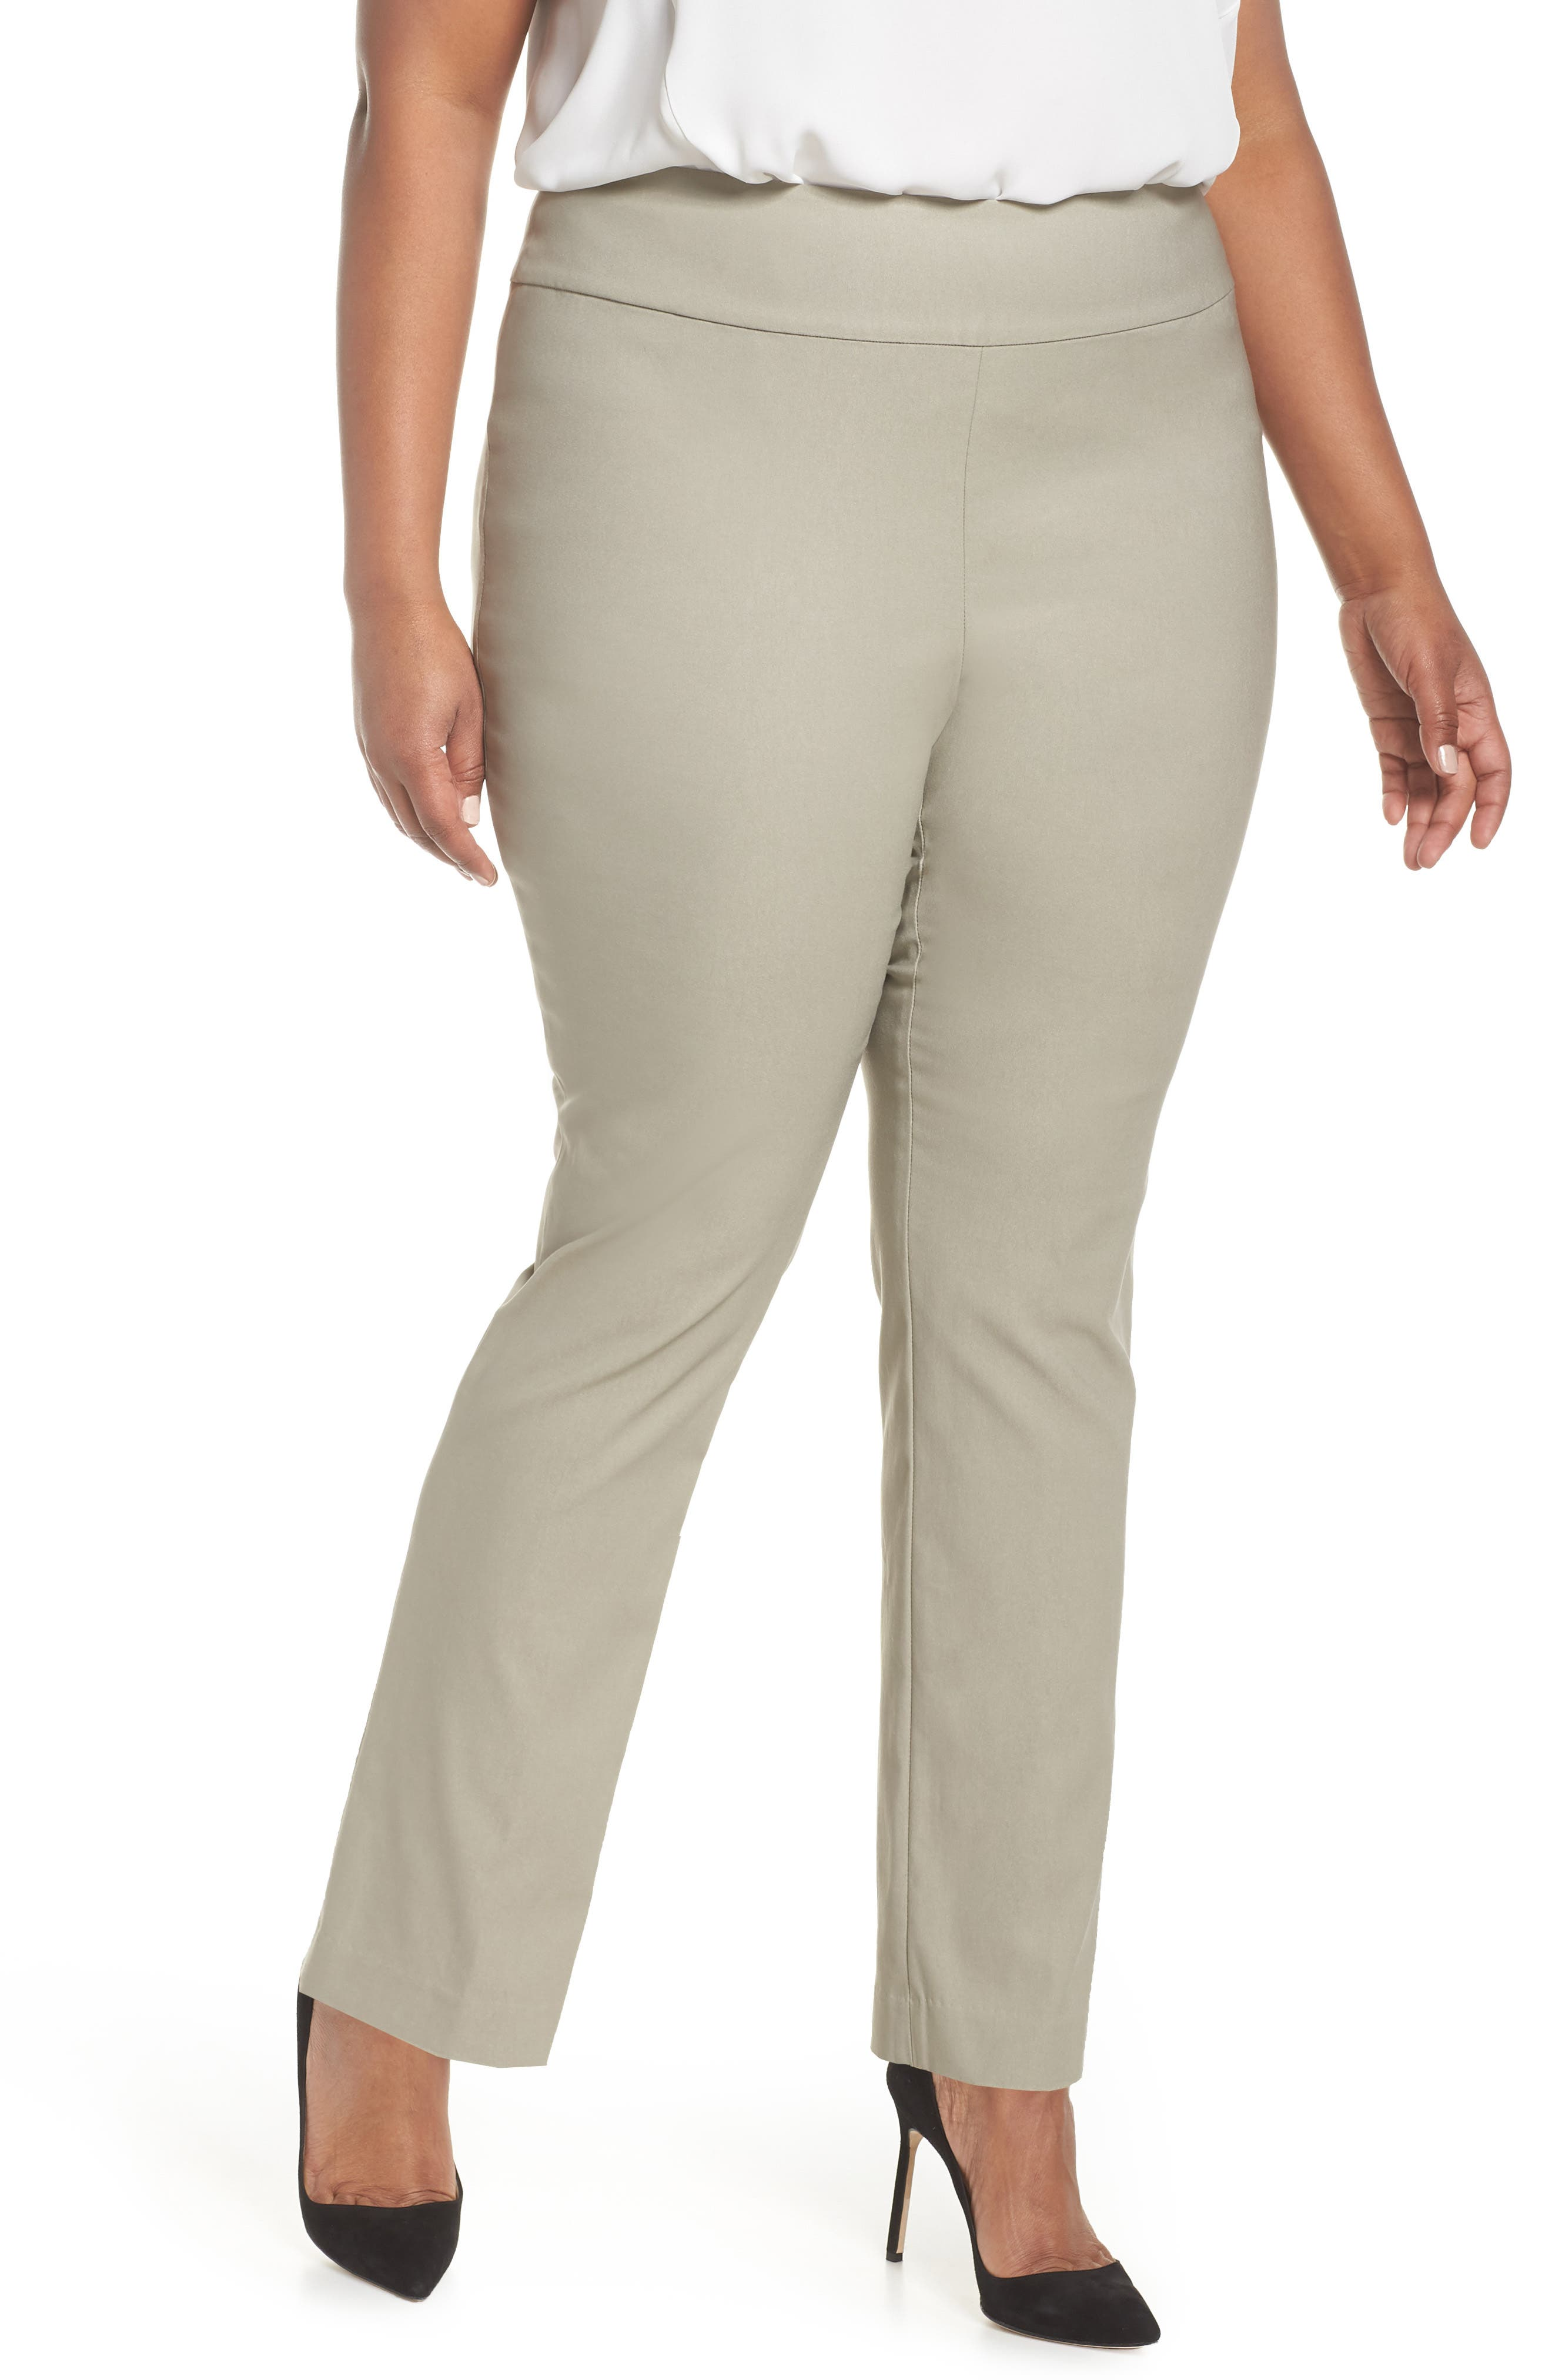 Wonderstretch High Rise Pants,                         Main,                         color, 251